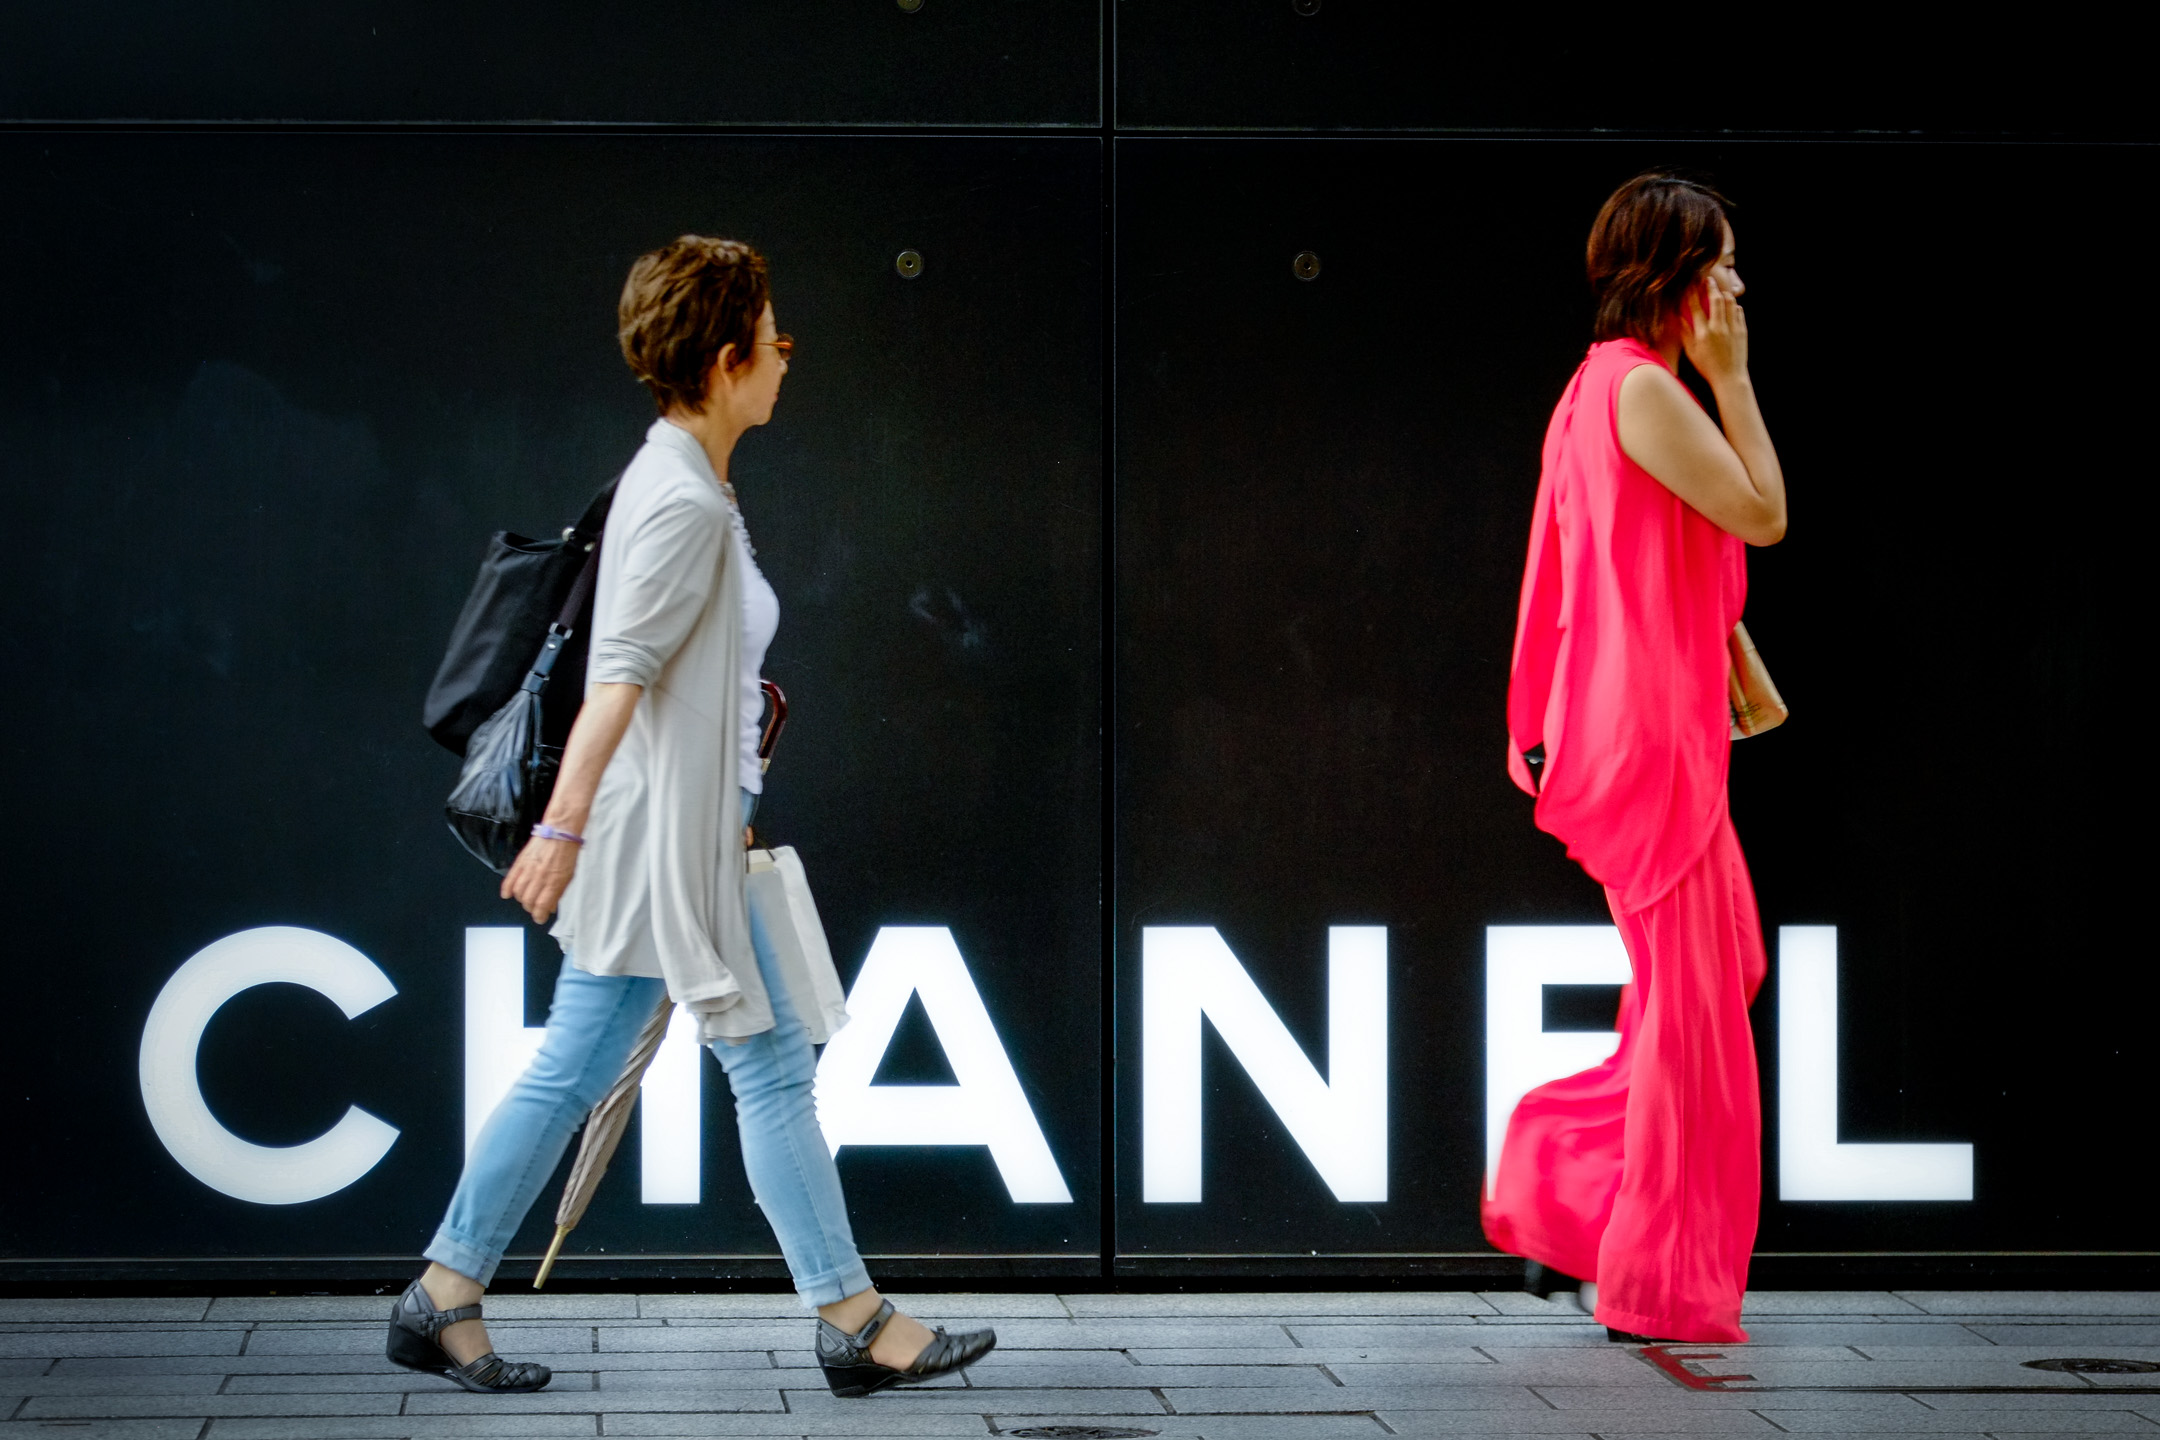 Fujifilm X-Pro1 - 55-200 @74mm - 1/170 - f/3.7 - iso800 This is the only time I used a long lens on this project. I spotted the Chanel sign and I waited for half an our on the other side of the street until I got some Eastern elegance in the picture to contrast with the Western icon.